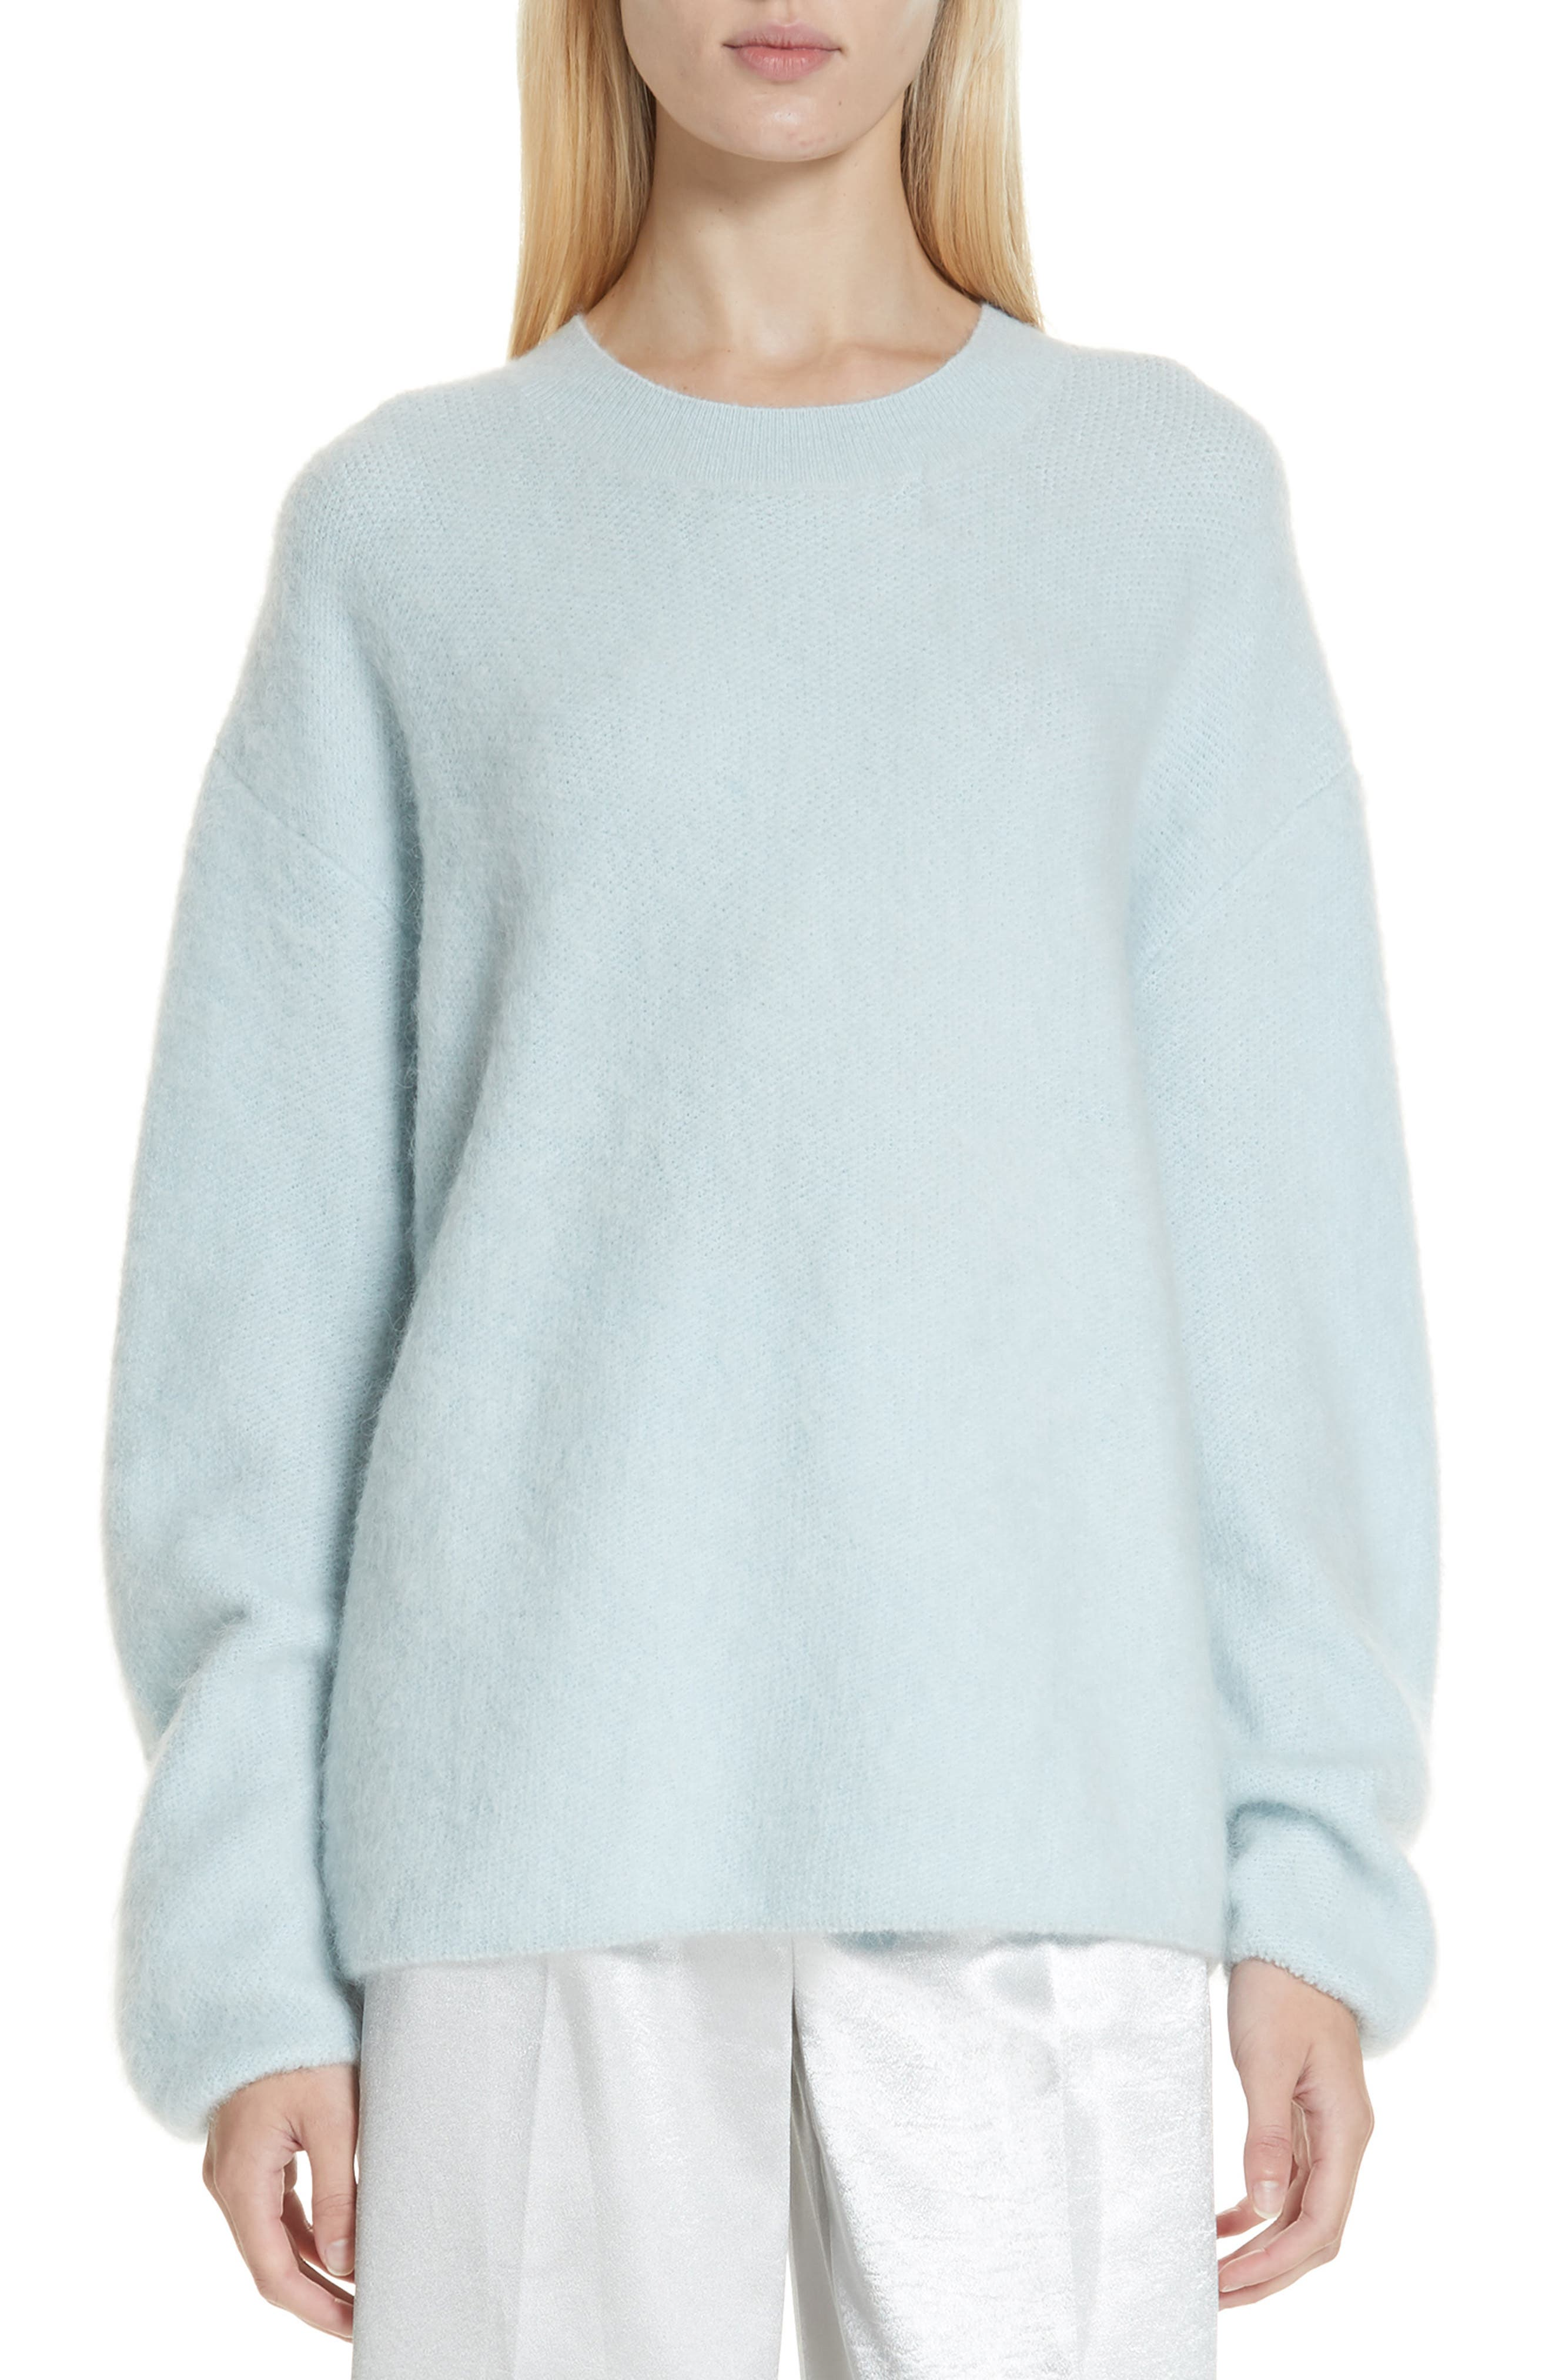 VINCE, Oversize Sweater, Main thumbnail 1, color, ICE/ BLUE